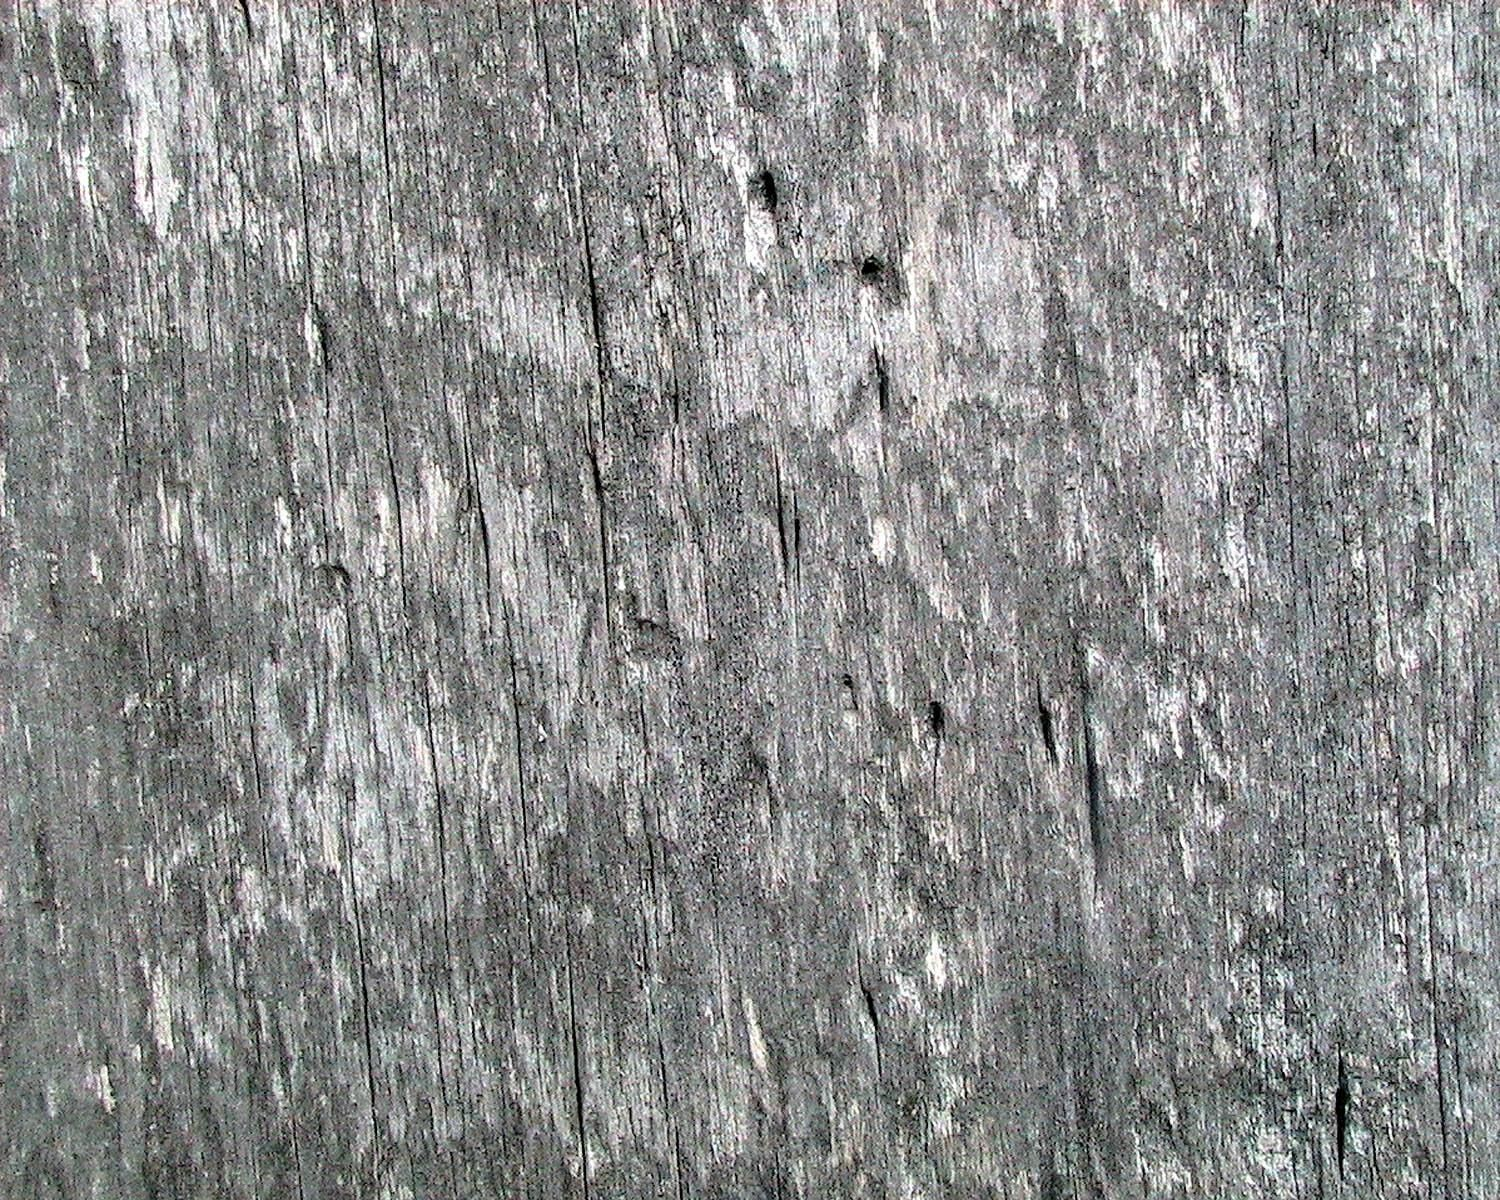 Weathered Barn Wood : Description Weathered barn wood with worm holes.jpg